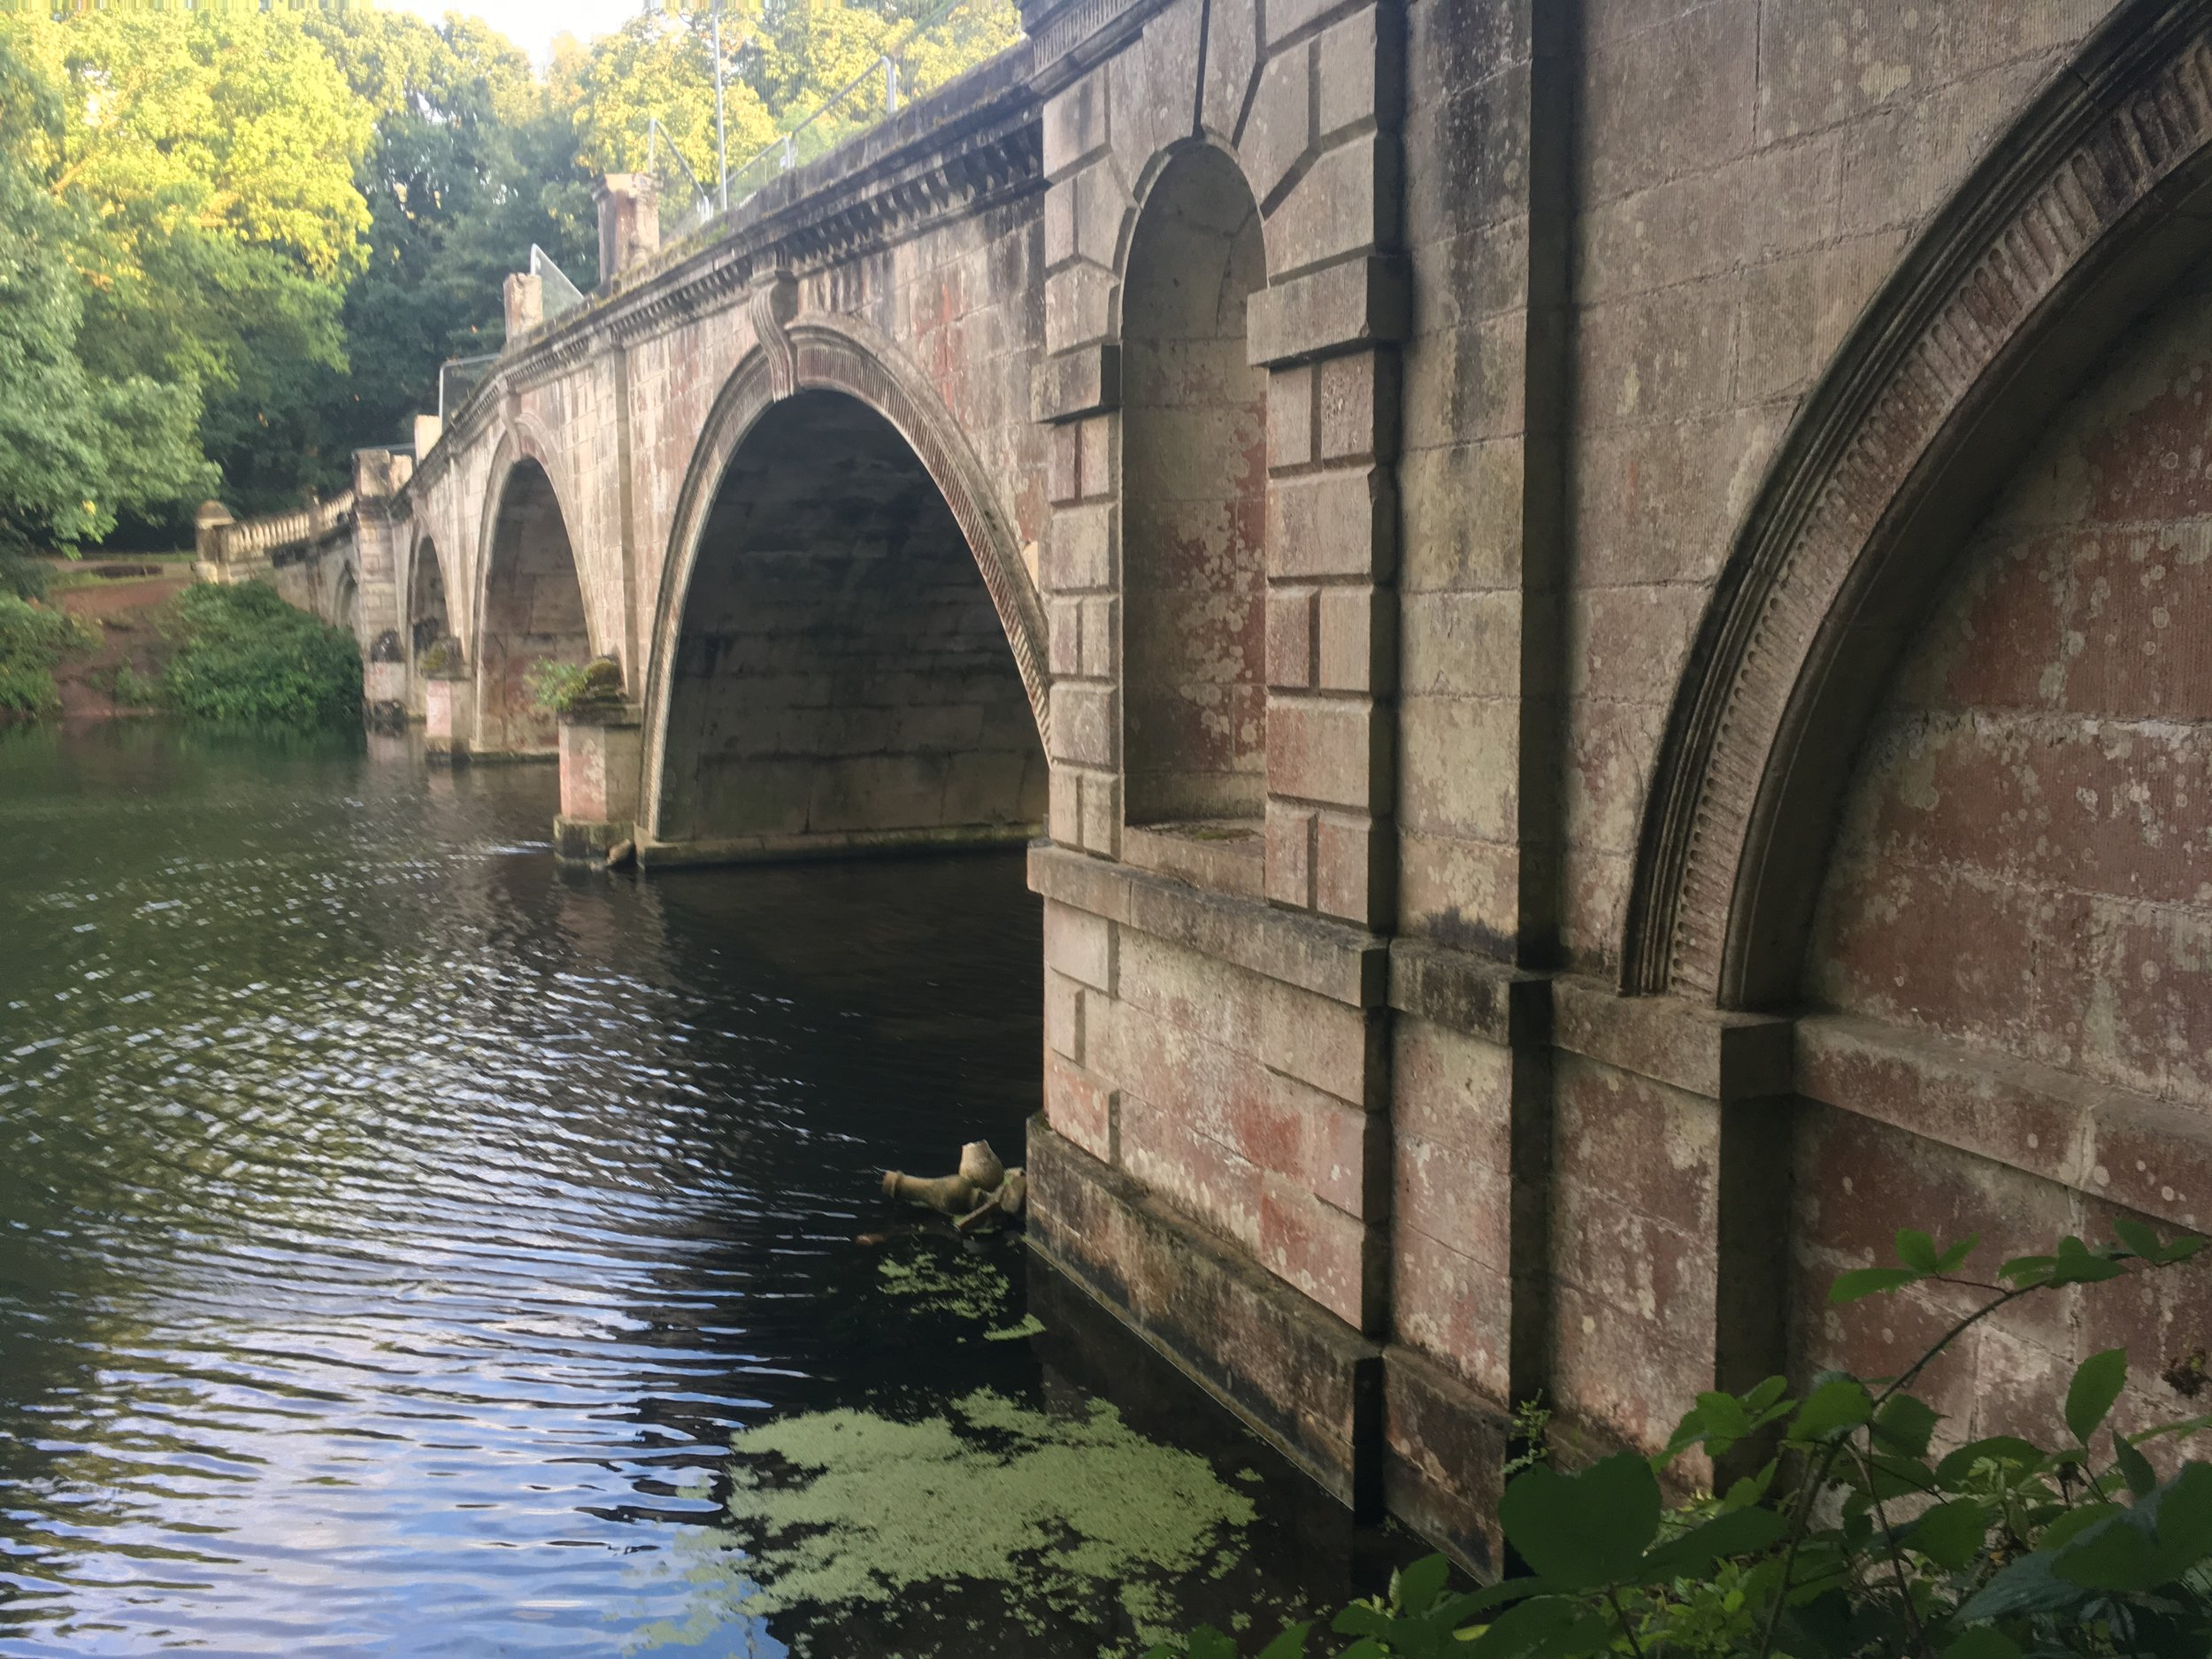 An ornate bridge surveyed for bats by B.A.T. Ecological in August 2018 (photo by Matt Cook)